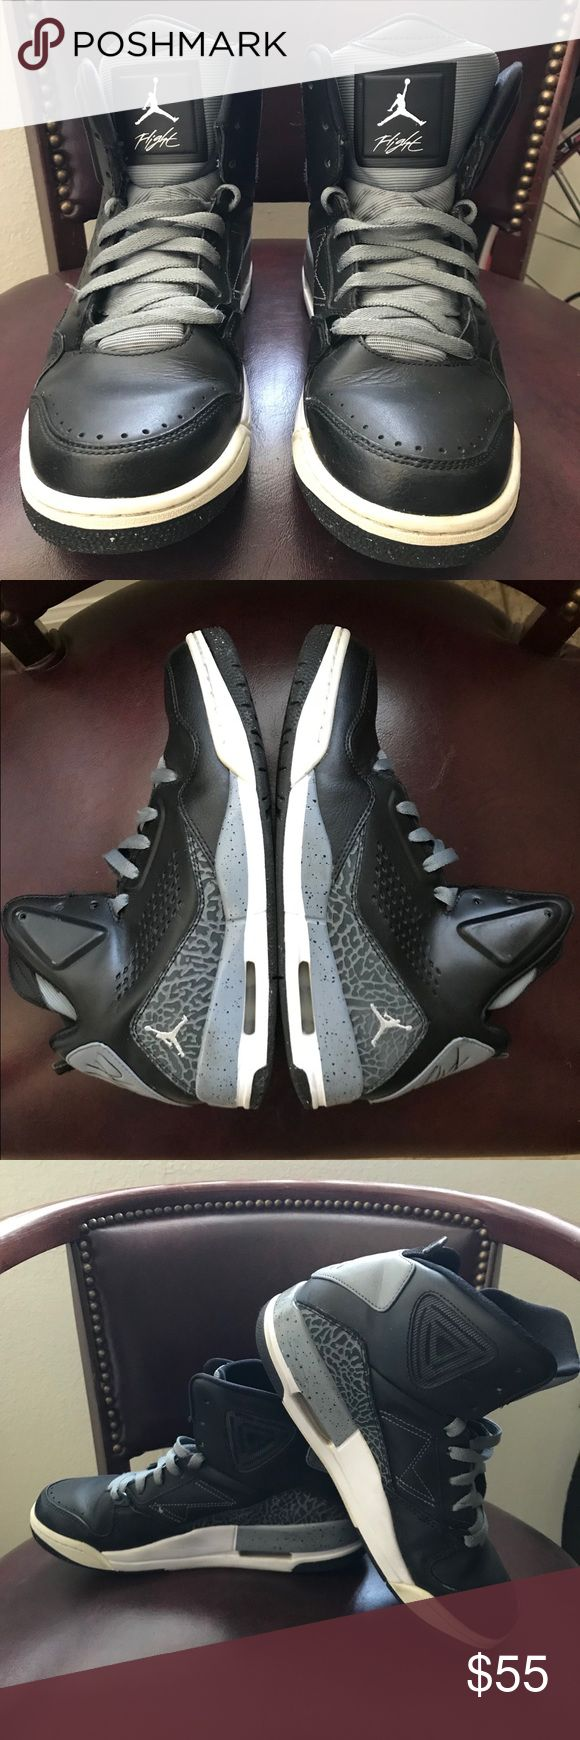 Nike Air Jordan flight black and grey🔥 Nike Air Jordan Flight 2014 shoes DS, black and grey gently worn. Size 8 men 9.5 women. Any questions ask.  Thanks Nike Shoes Sneakers